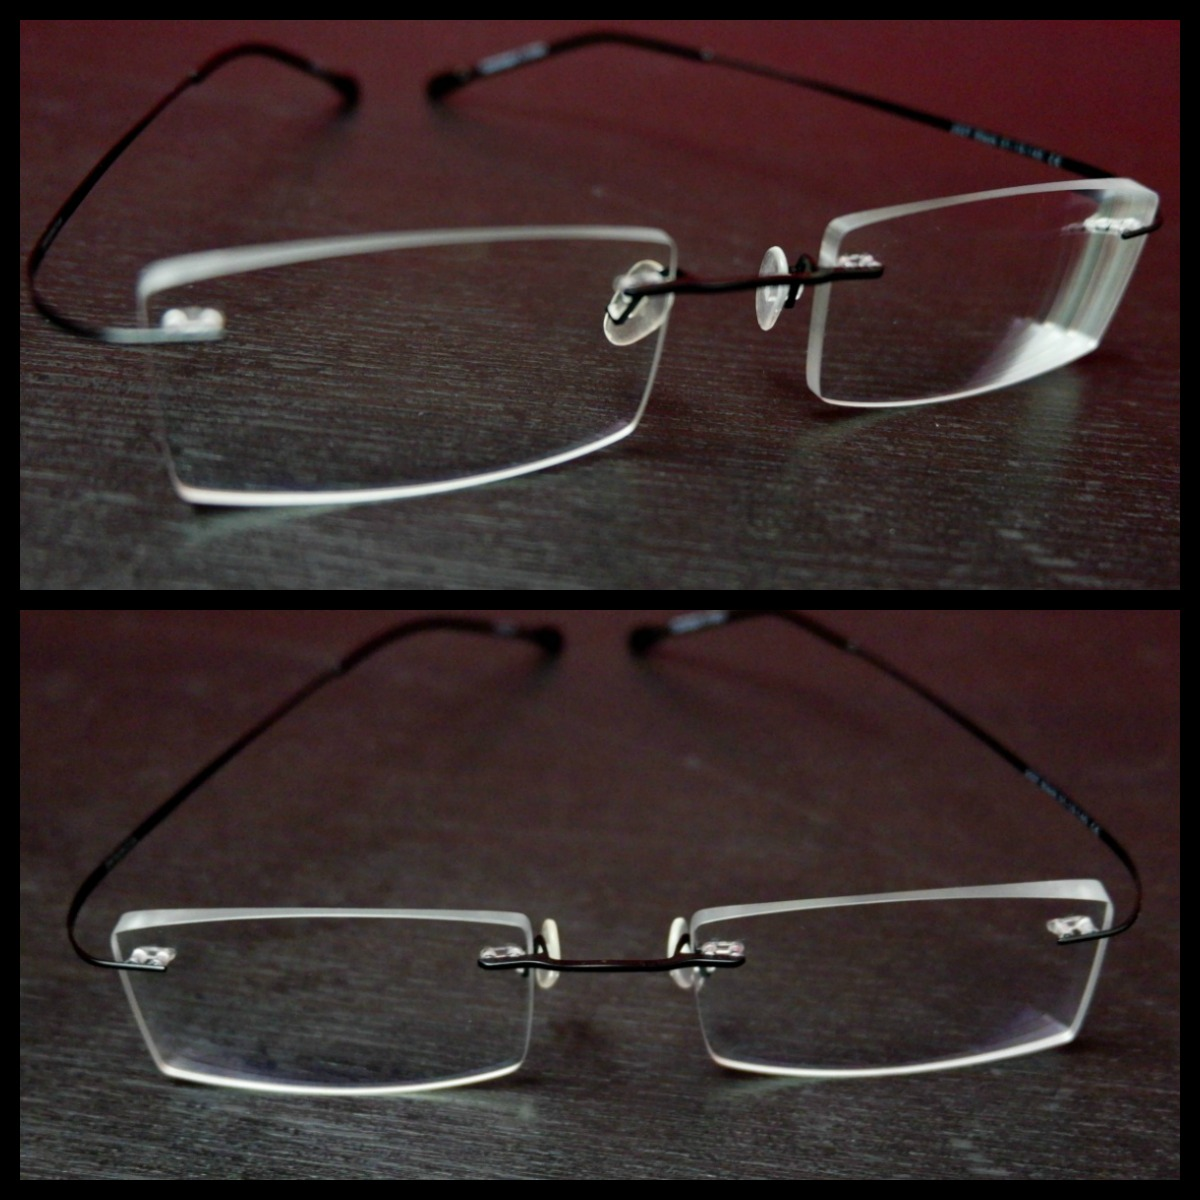 Clearly Rimless Glasses